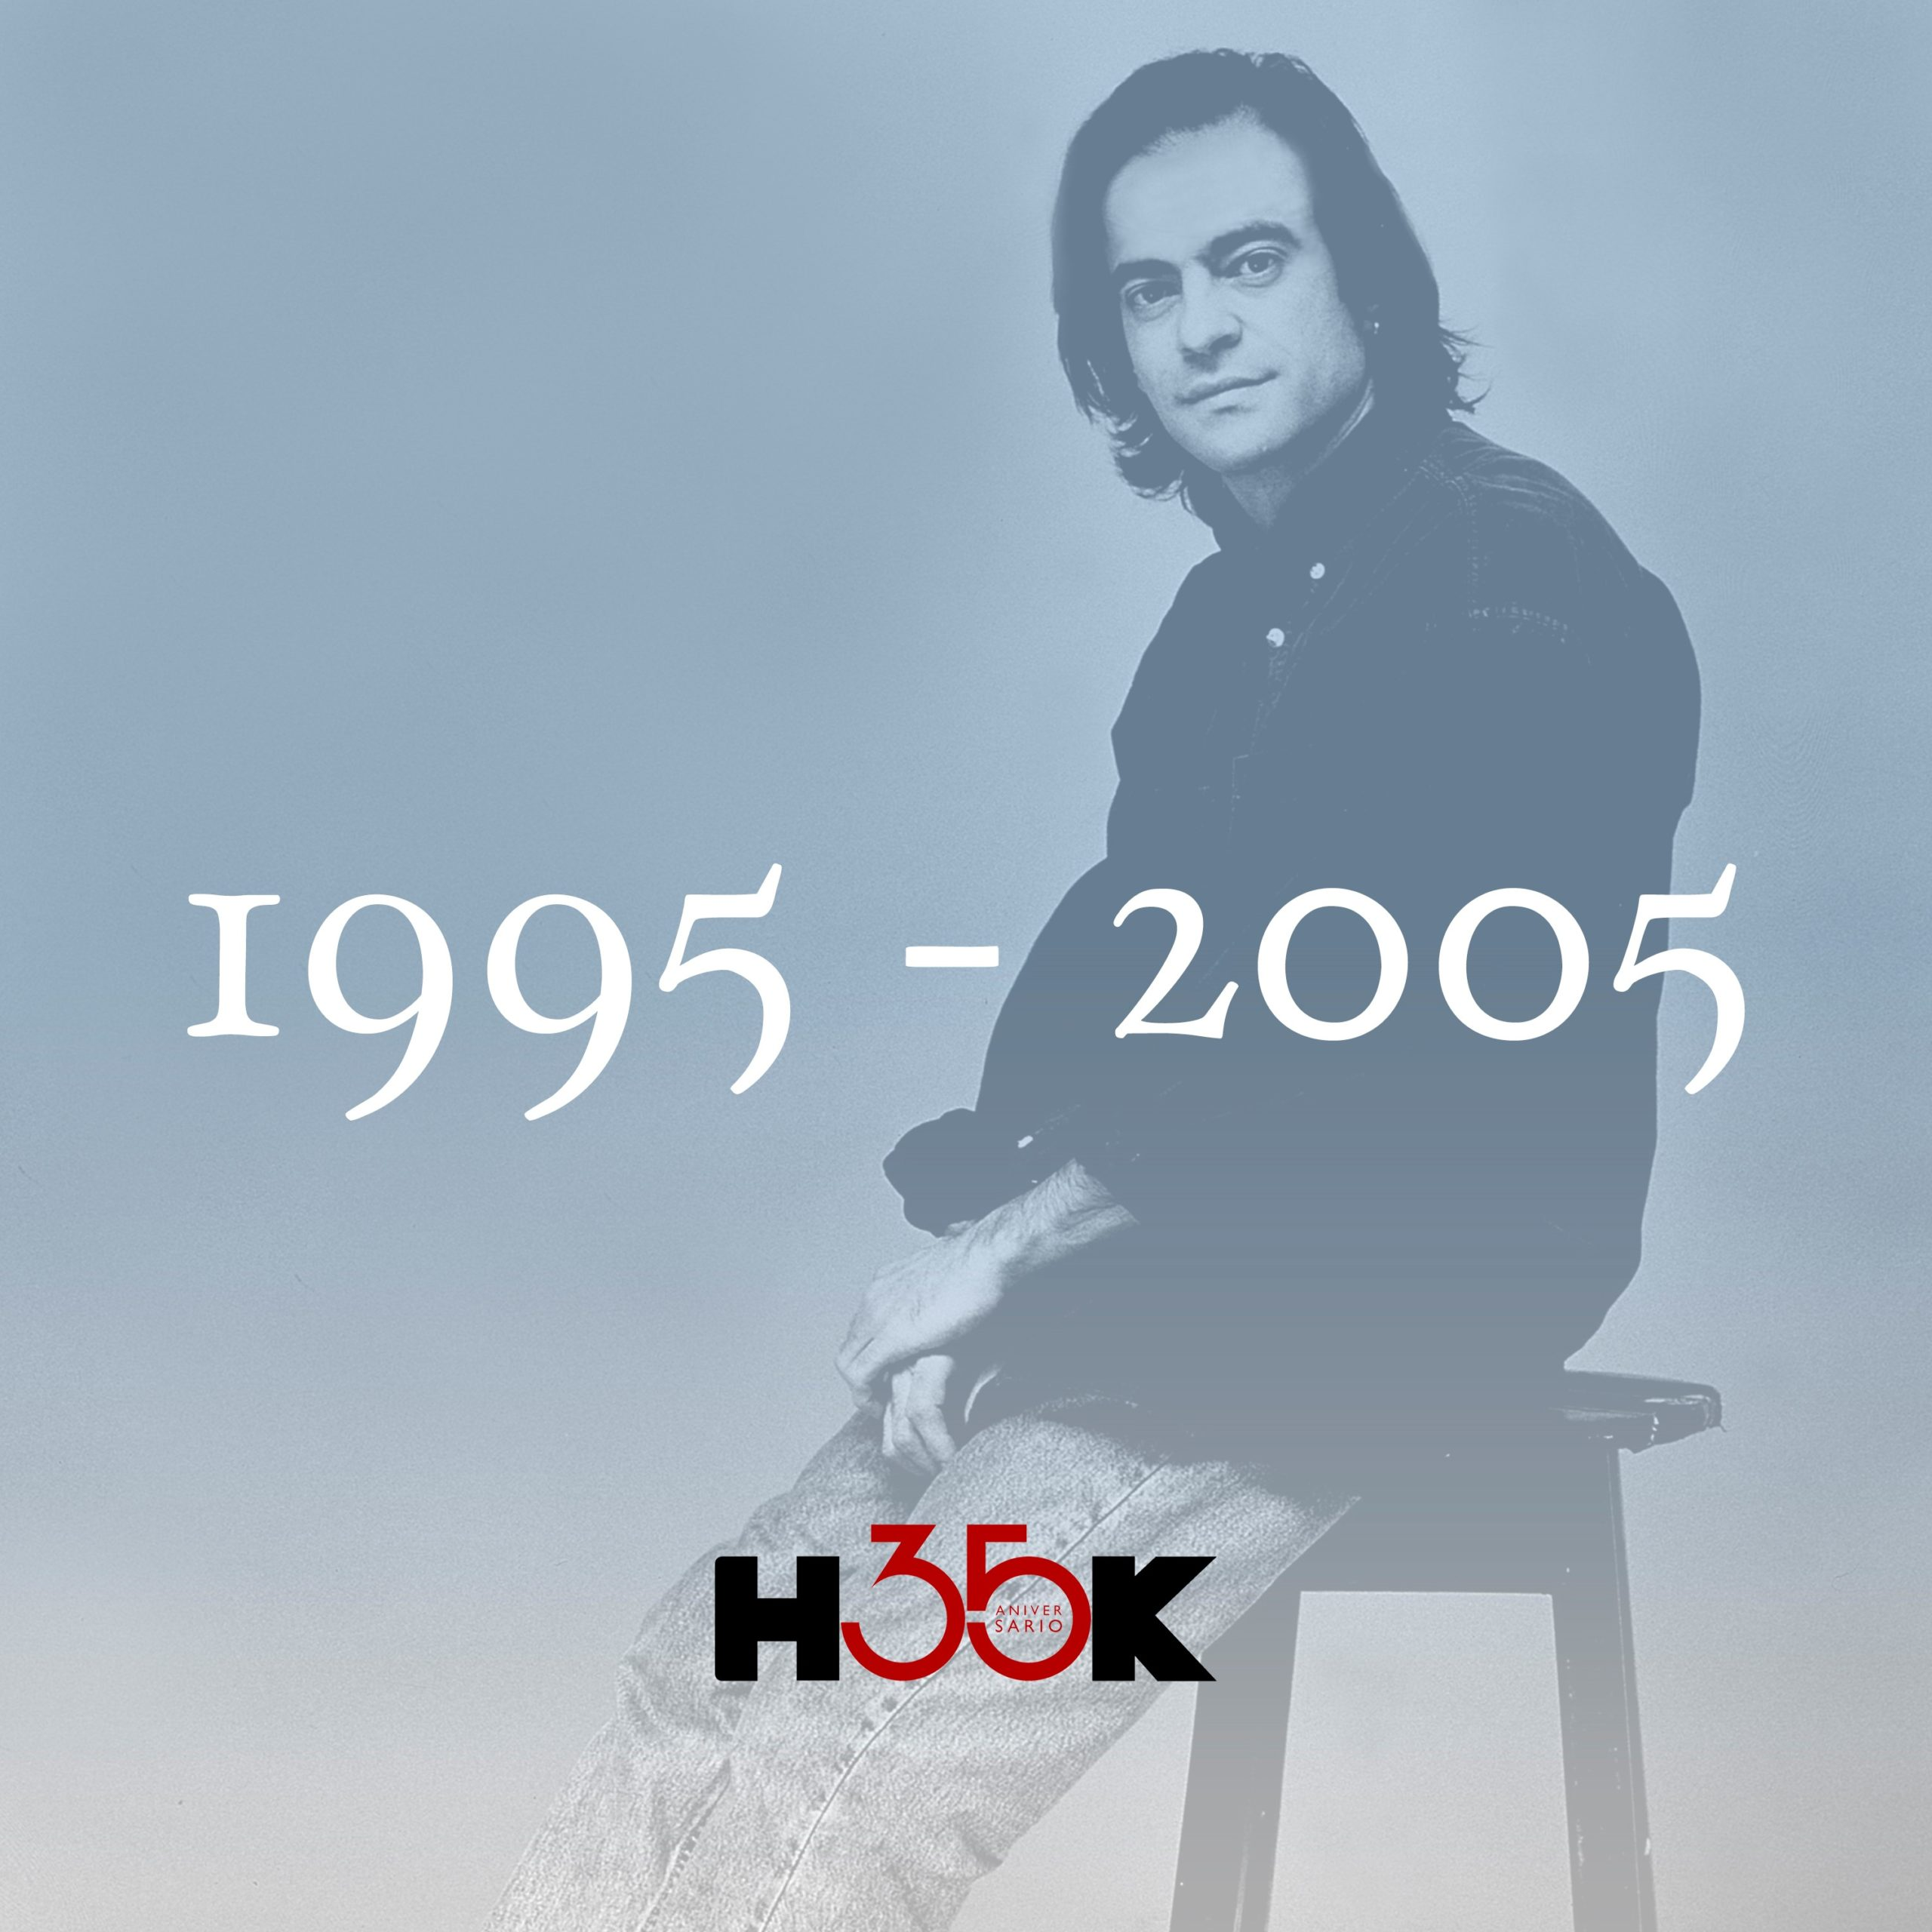 HOOK Management: canciones de 1995 a 2005, segunda playlist